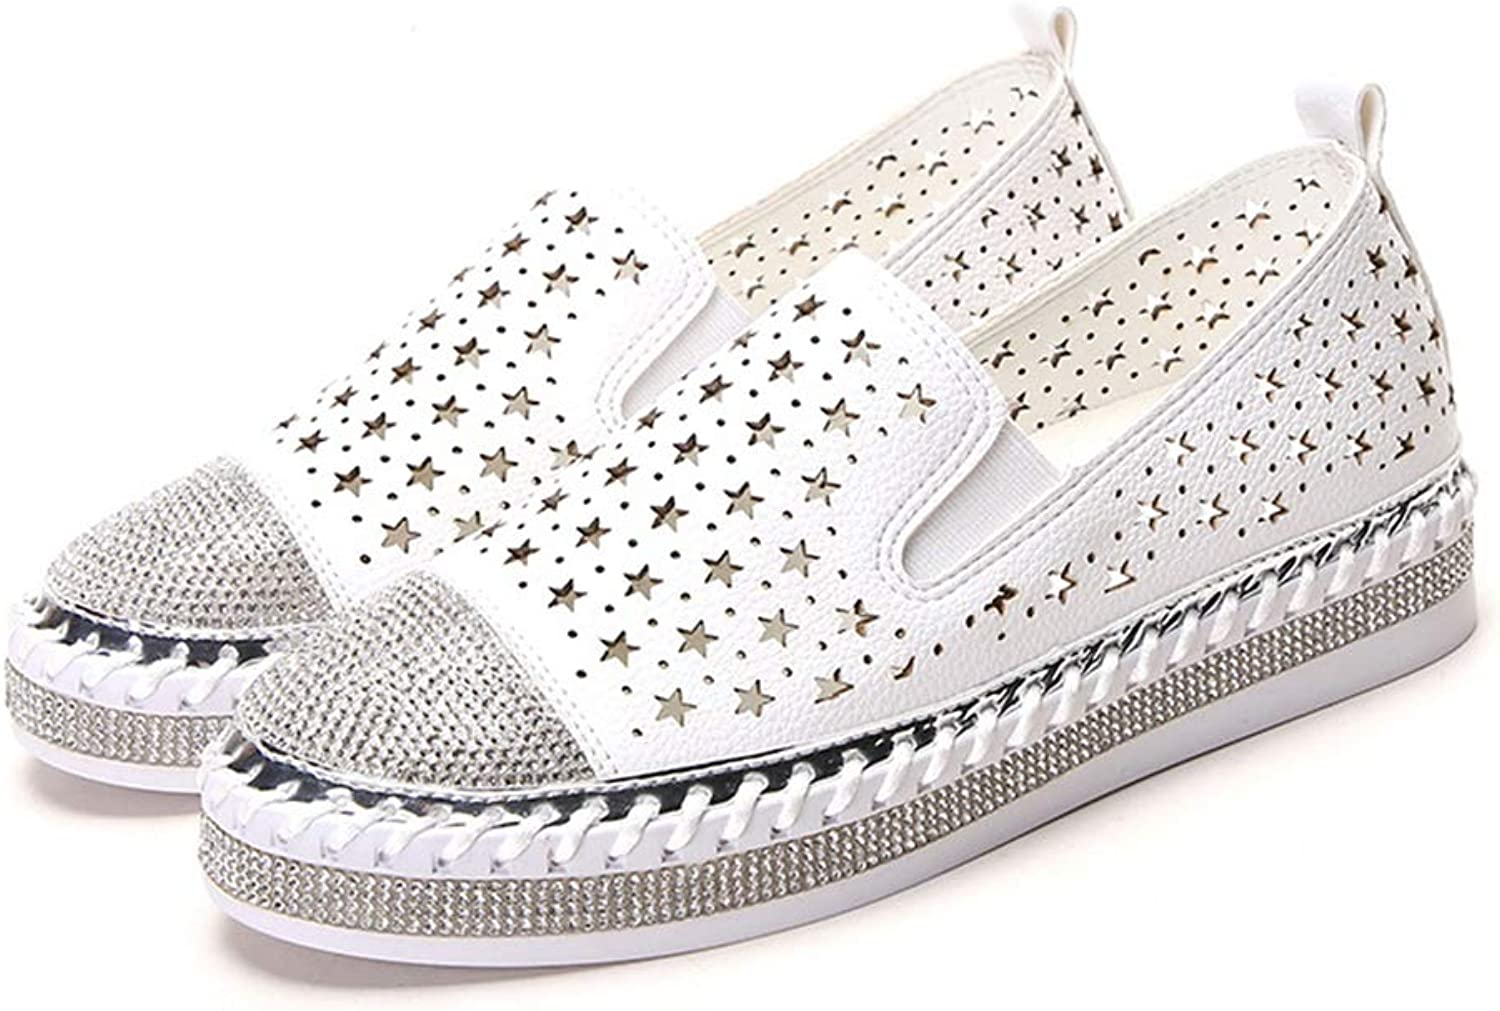 JOYBI Women's Bling Platform Sneakers Breathable Star Hollow Crystal Decor Delicate Stitchese Ladies Slip On Flats Loafers